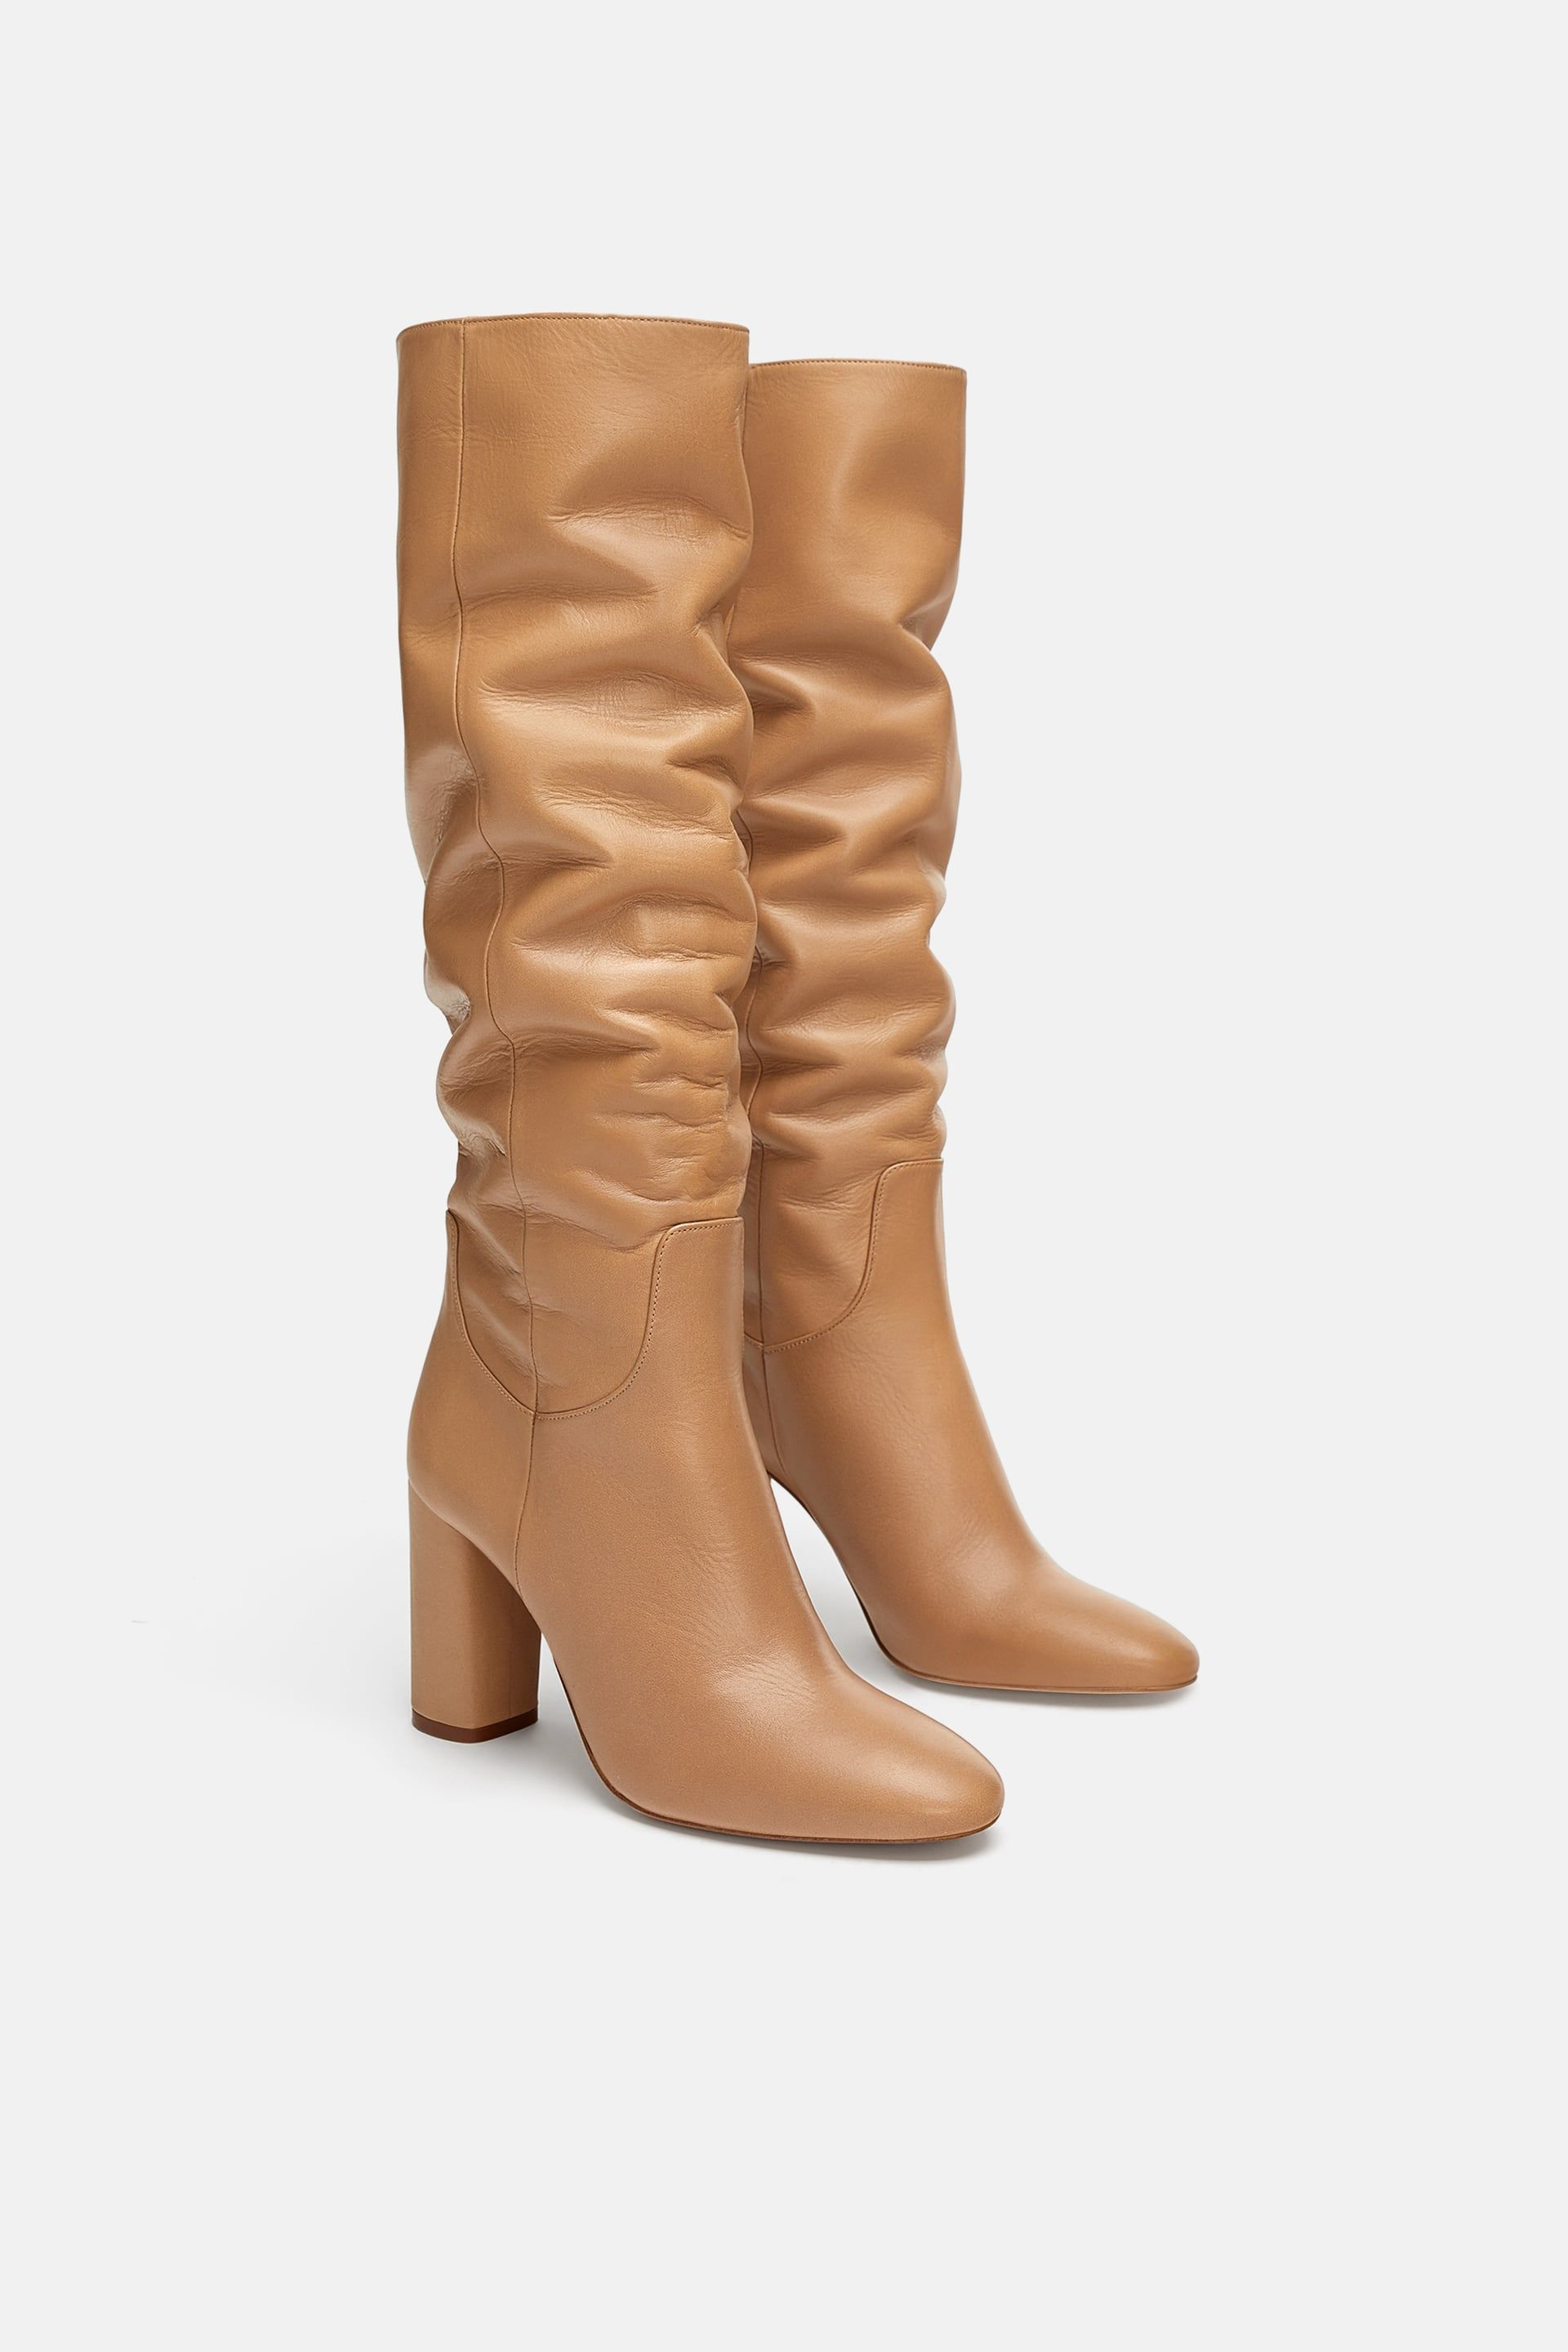 2145c43516d1 Image 3 of HIGH HEELED LEATHER BOOTS from Zara | shoes | Leather ...